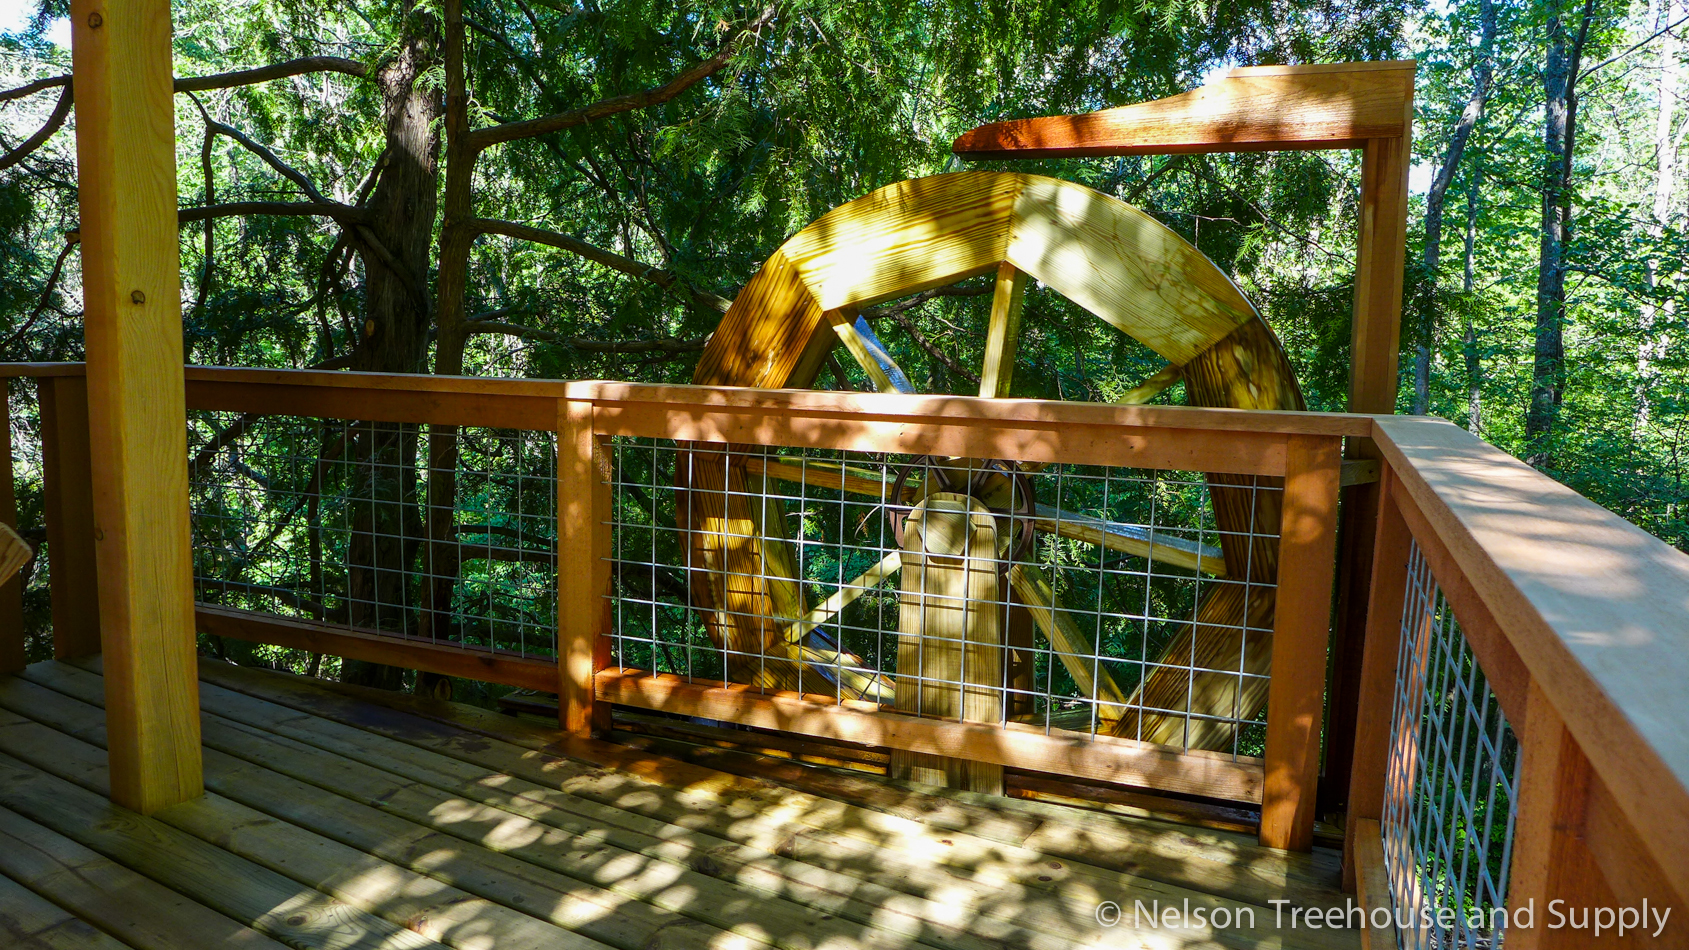 chang_treehouse_water_wheel